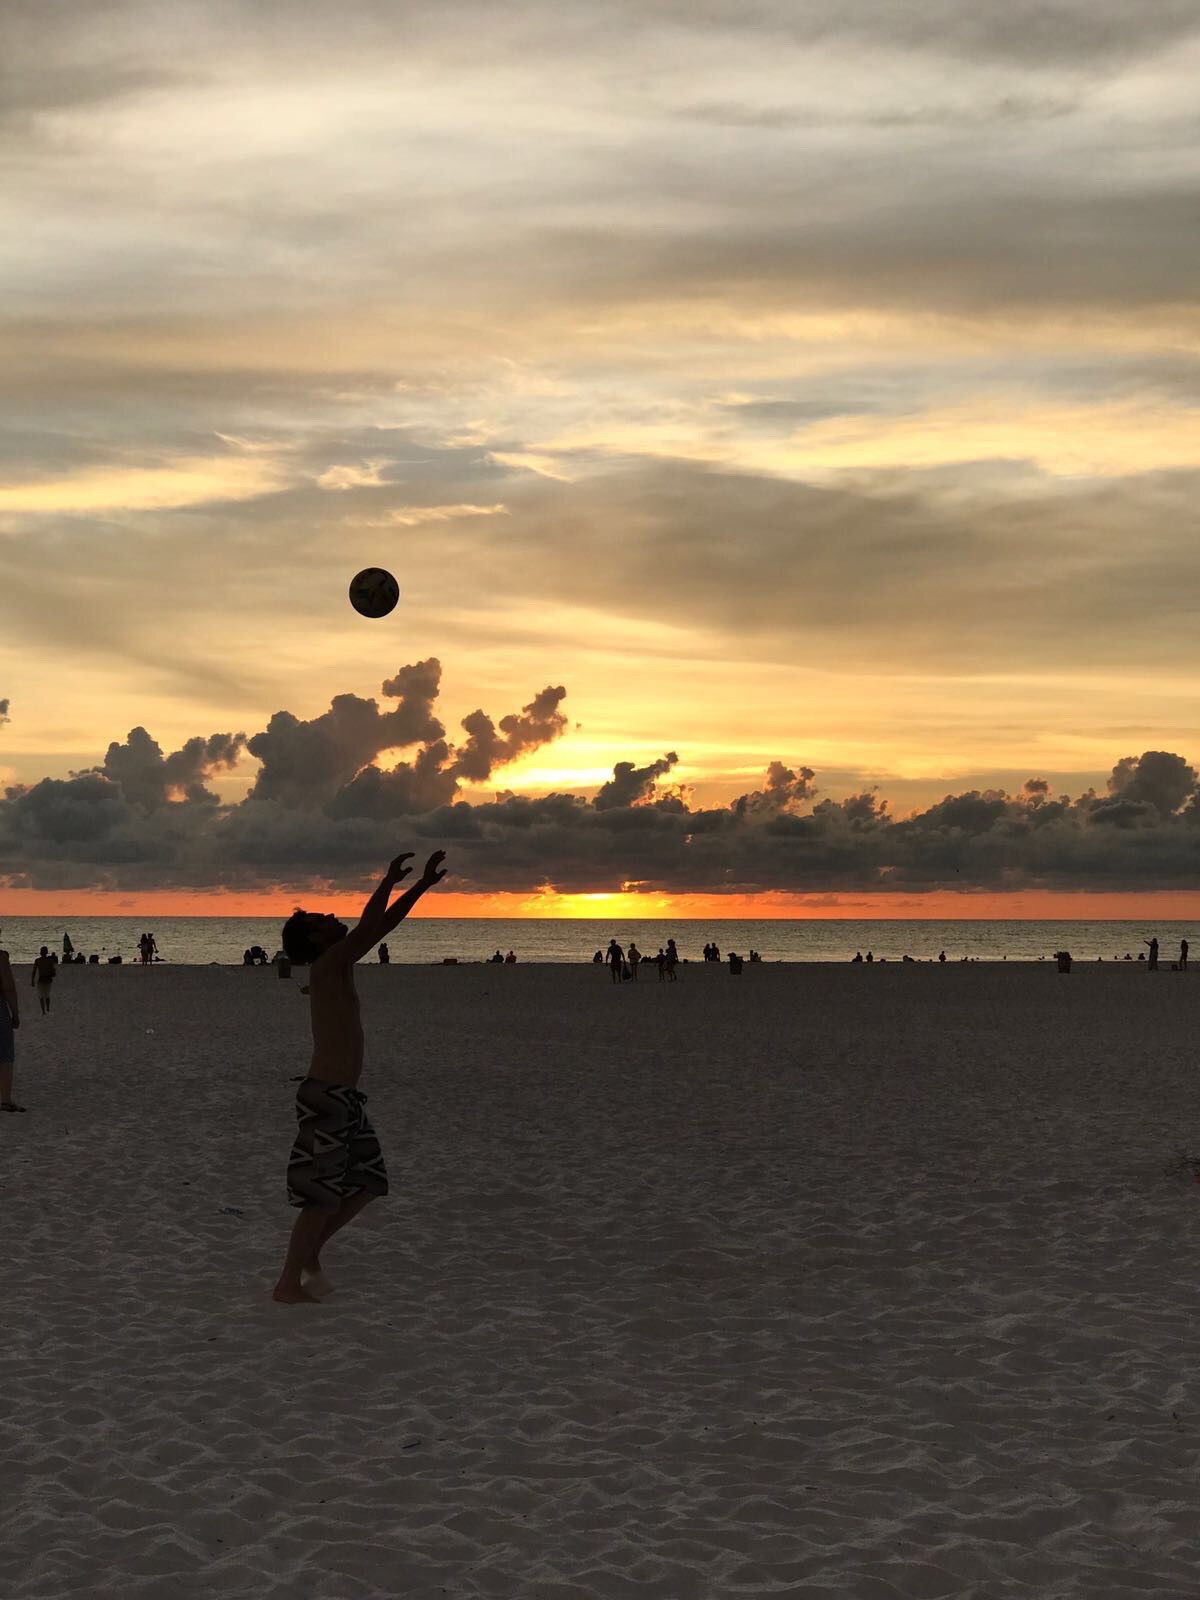 A sunset silhouette of a young male volleyball player tossing the volleyball high above his head